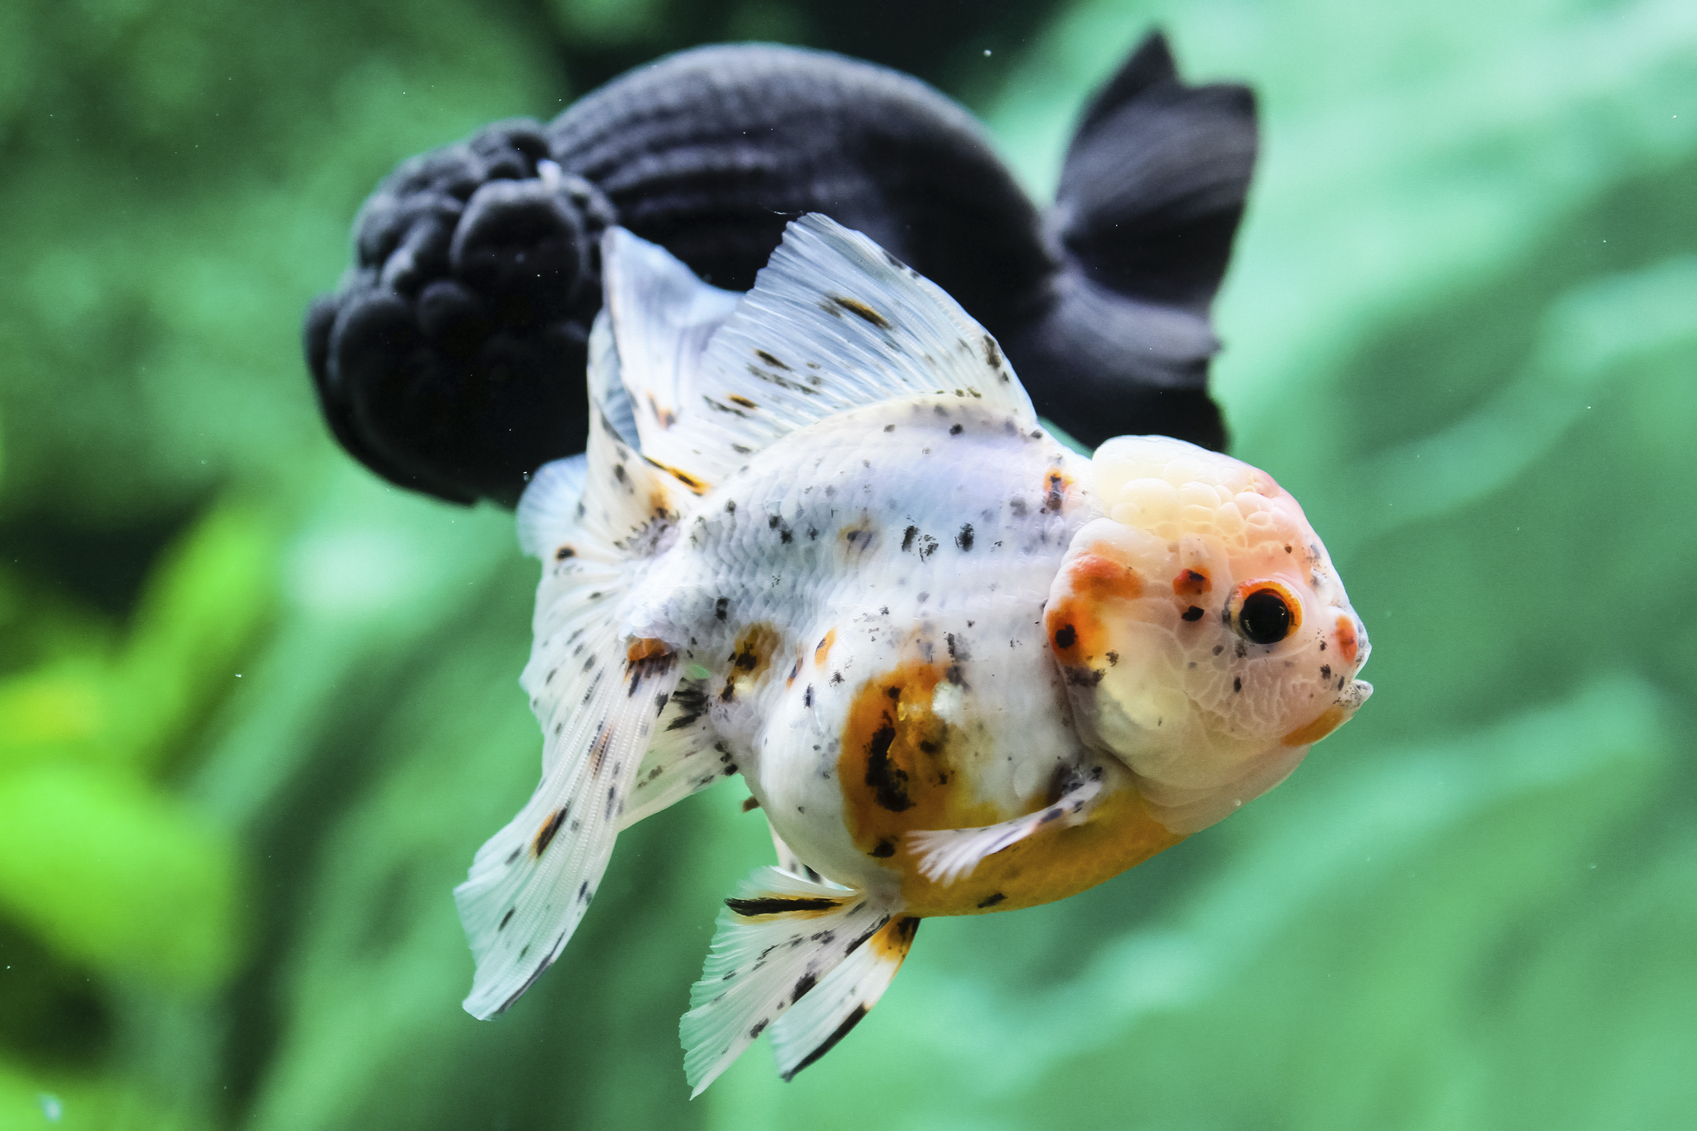 Charm A Tank Black Molly Fish Price Black Molly Fish Tank Fish Feng Shui Lucky Number houzz-02 Black Molly Fish